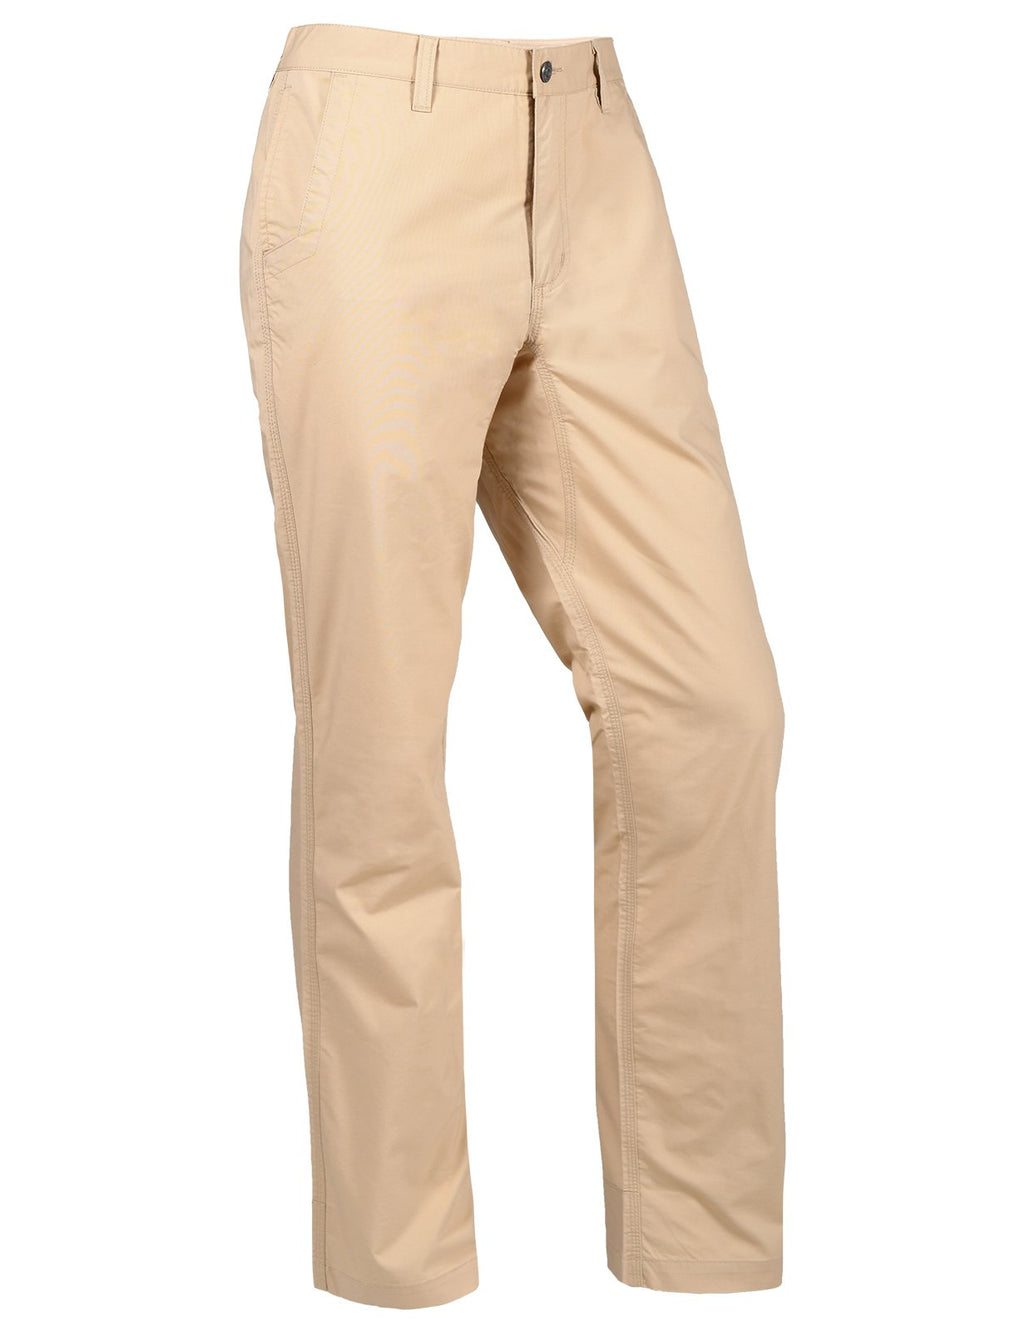 Men's Poplin Stretch Organic Cotton Pants | Mountain Khakis